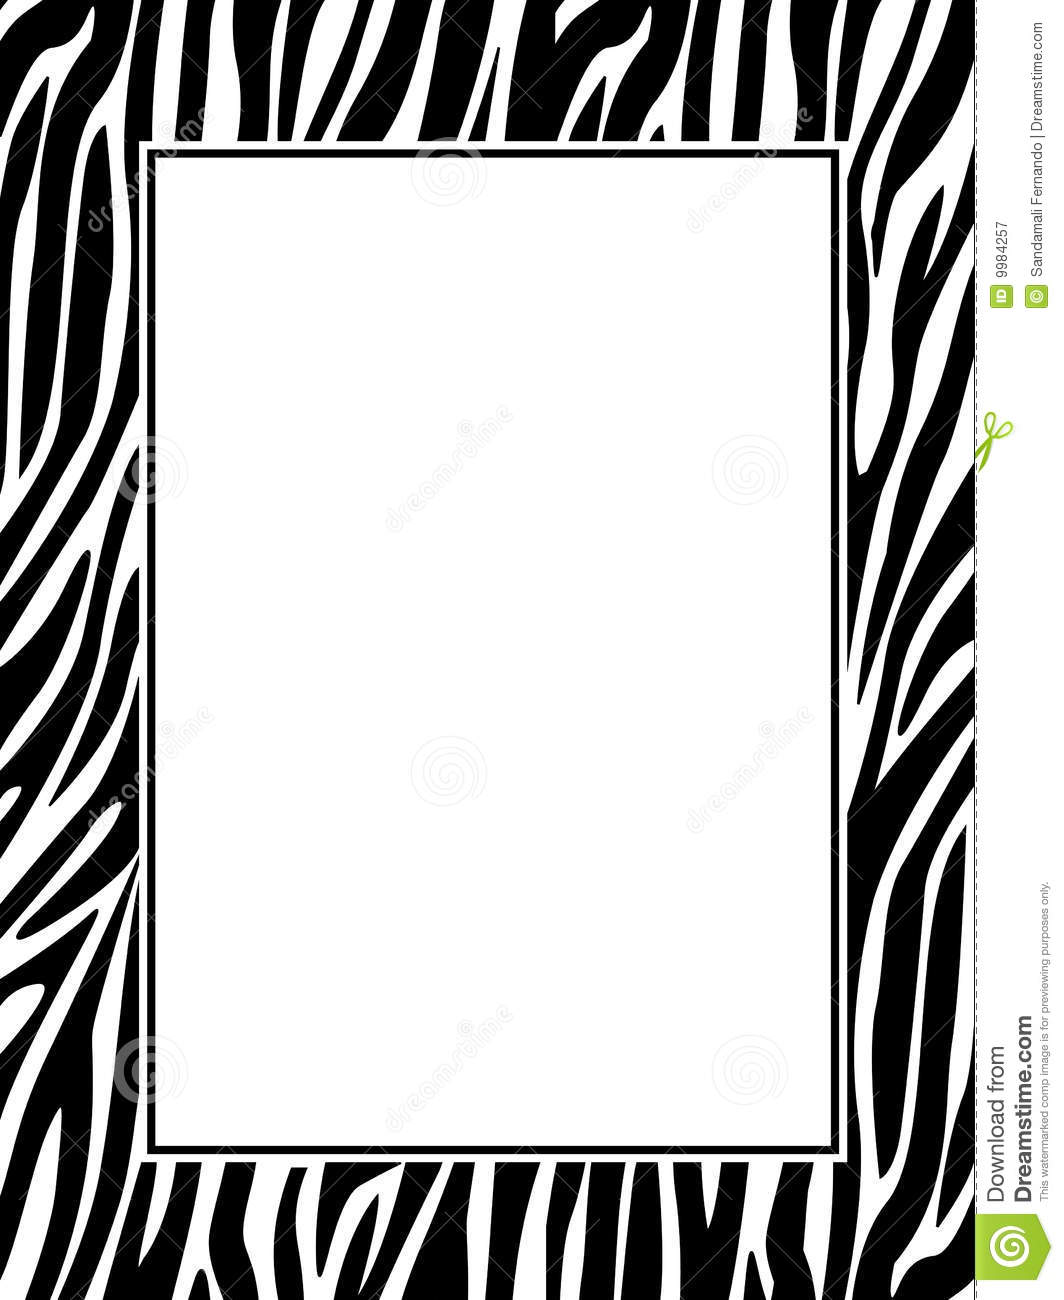 Zebra Print Border Royalty Free Stock Photography Image